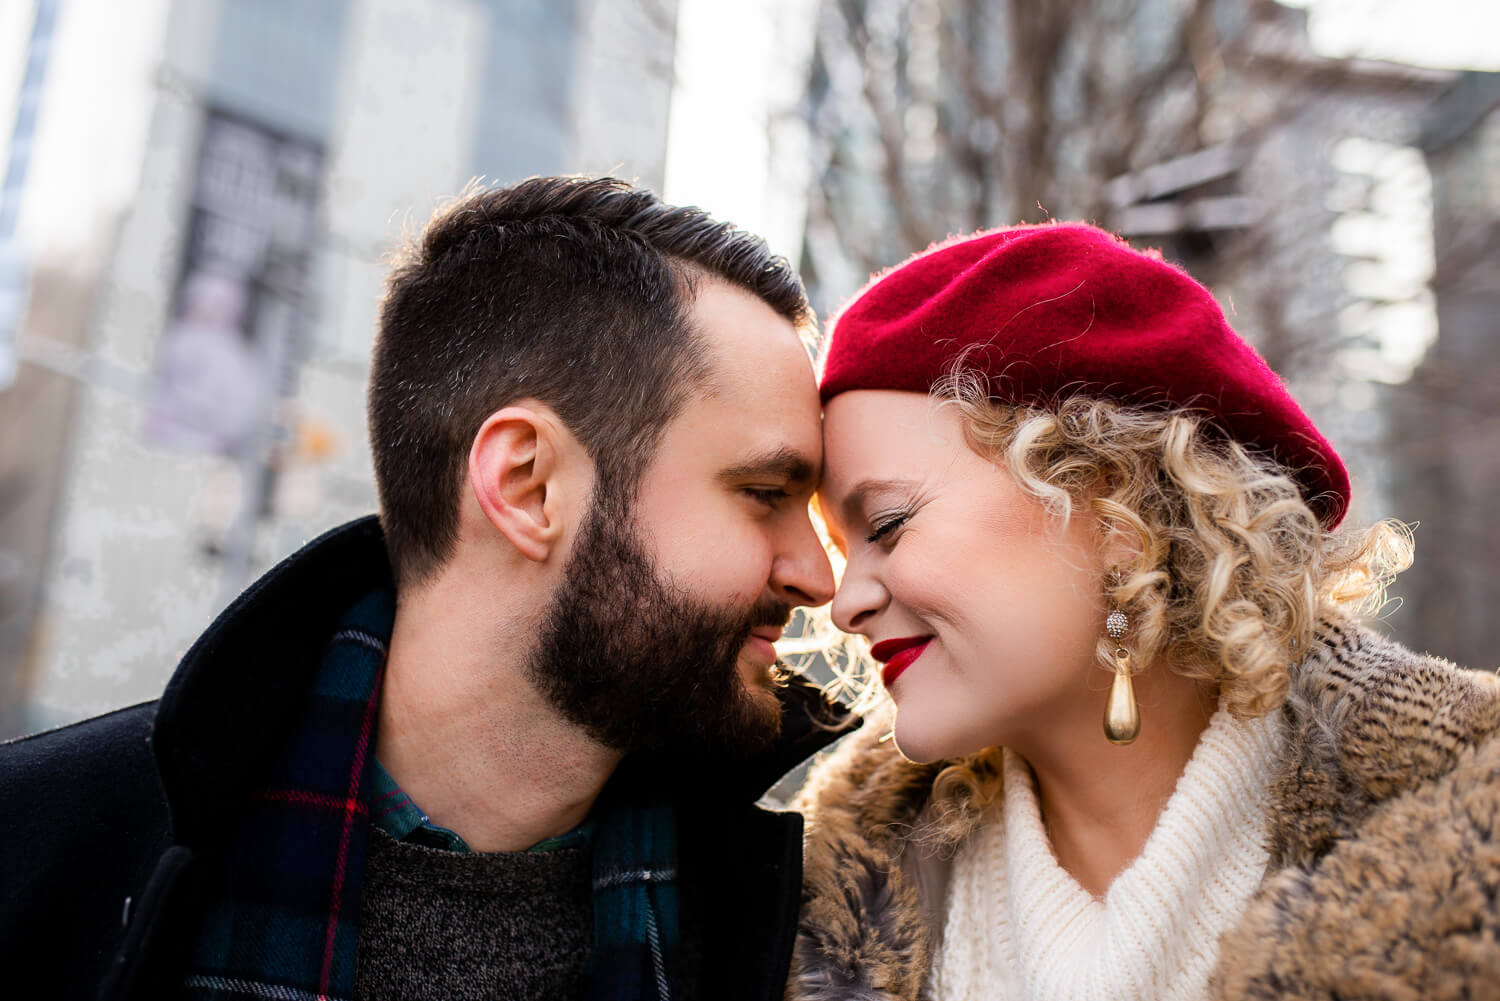 New York City actress Amanda Jane Cooper poses with her fiancé Andrew Bell during their NYC engagement session with dreamy photographer ALN IMAGES